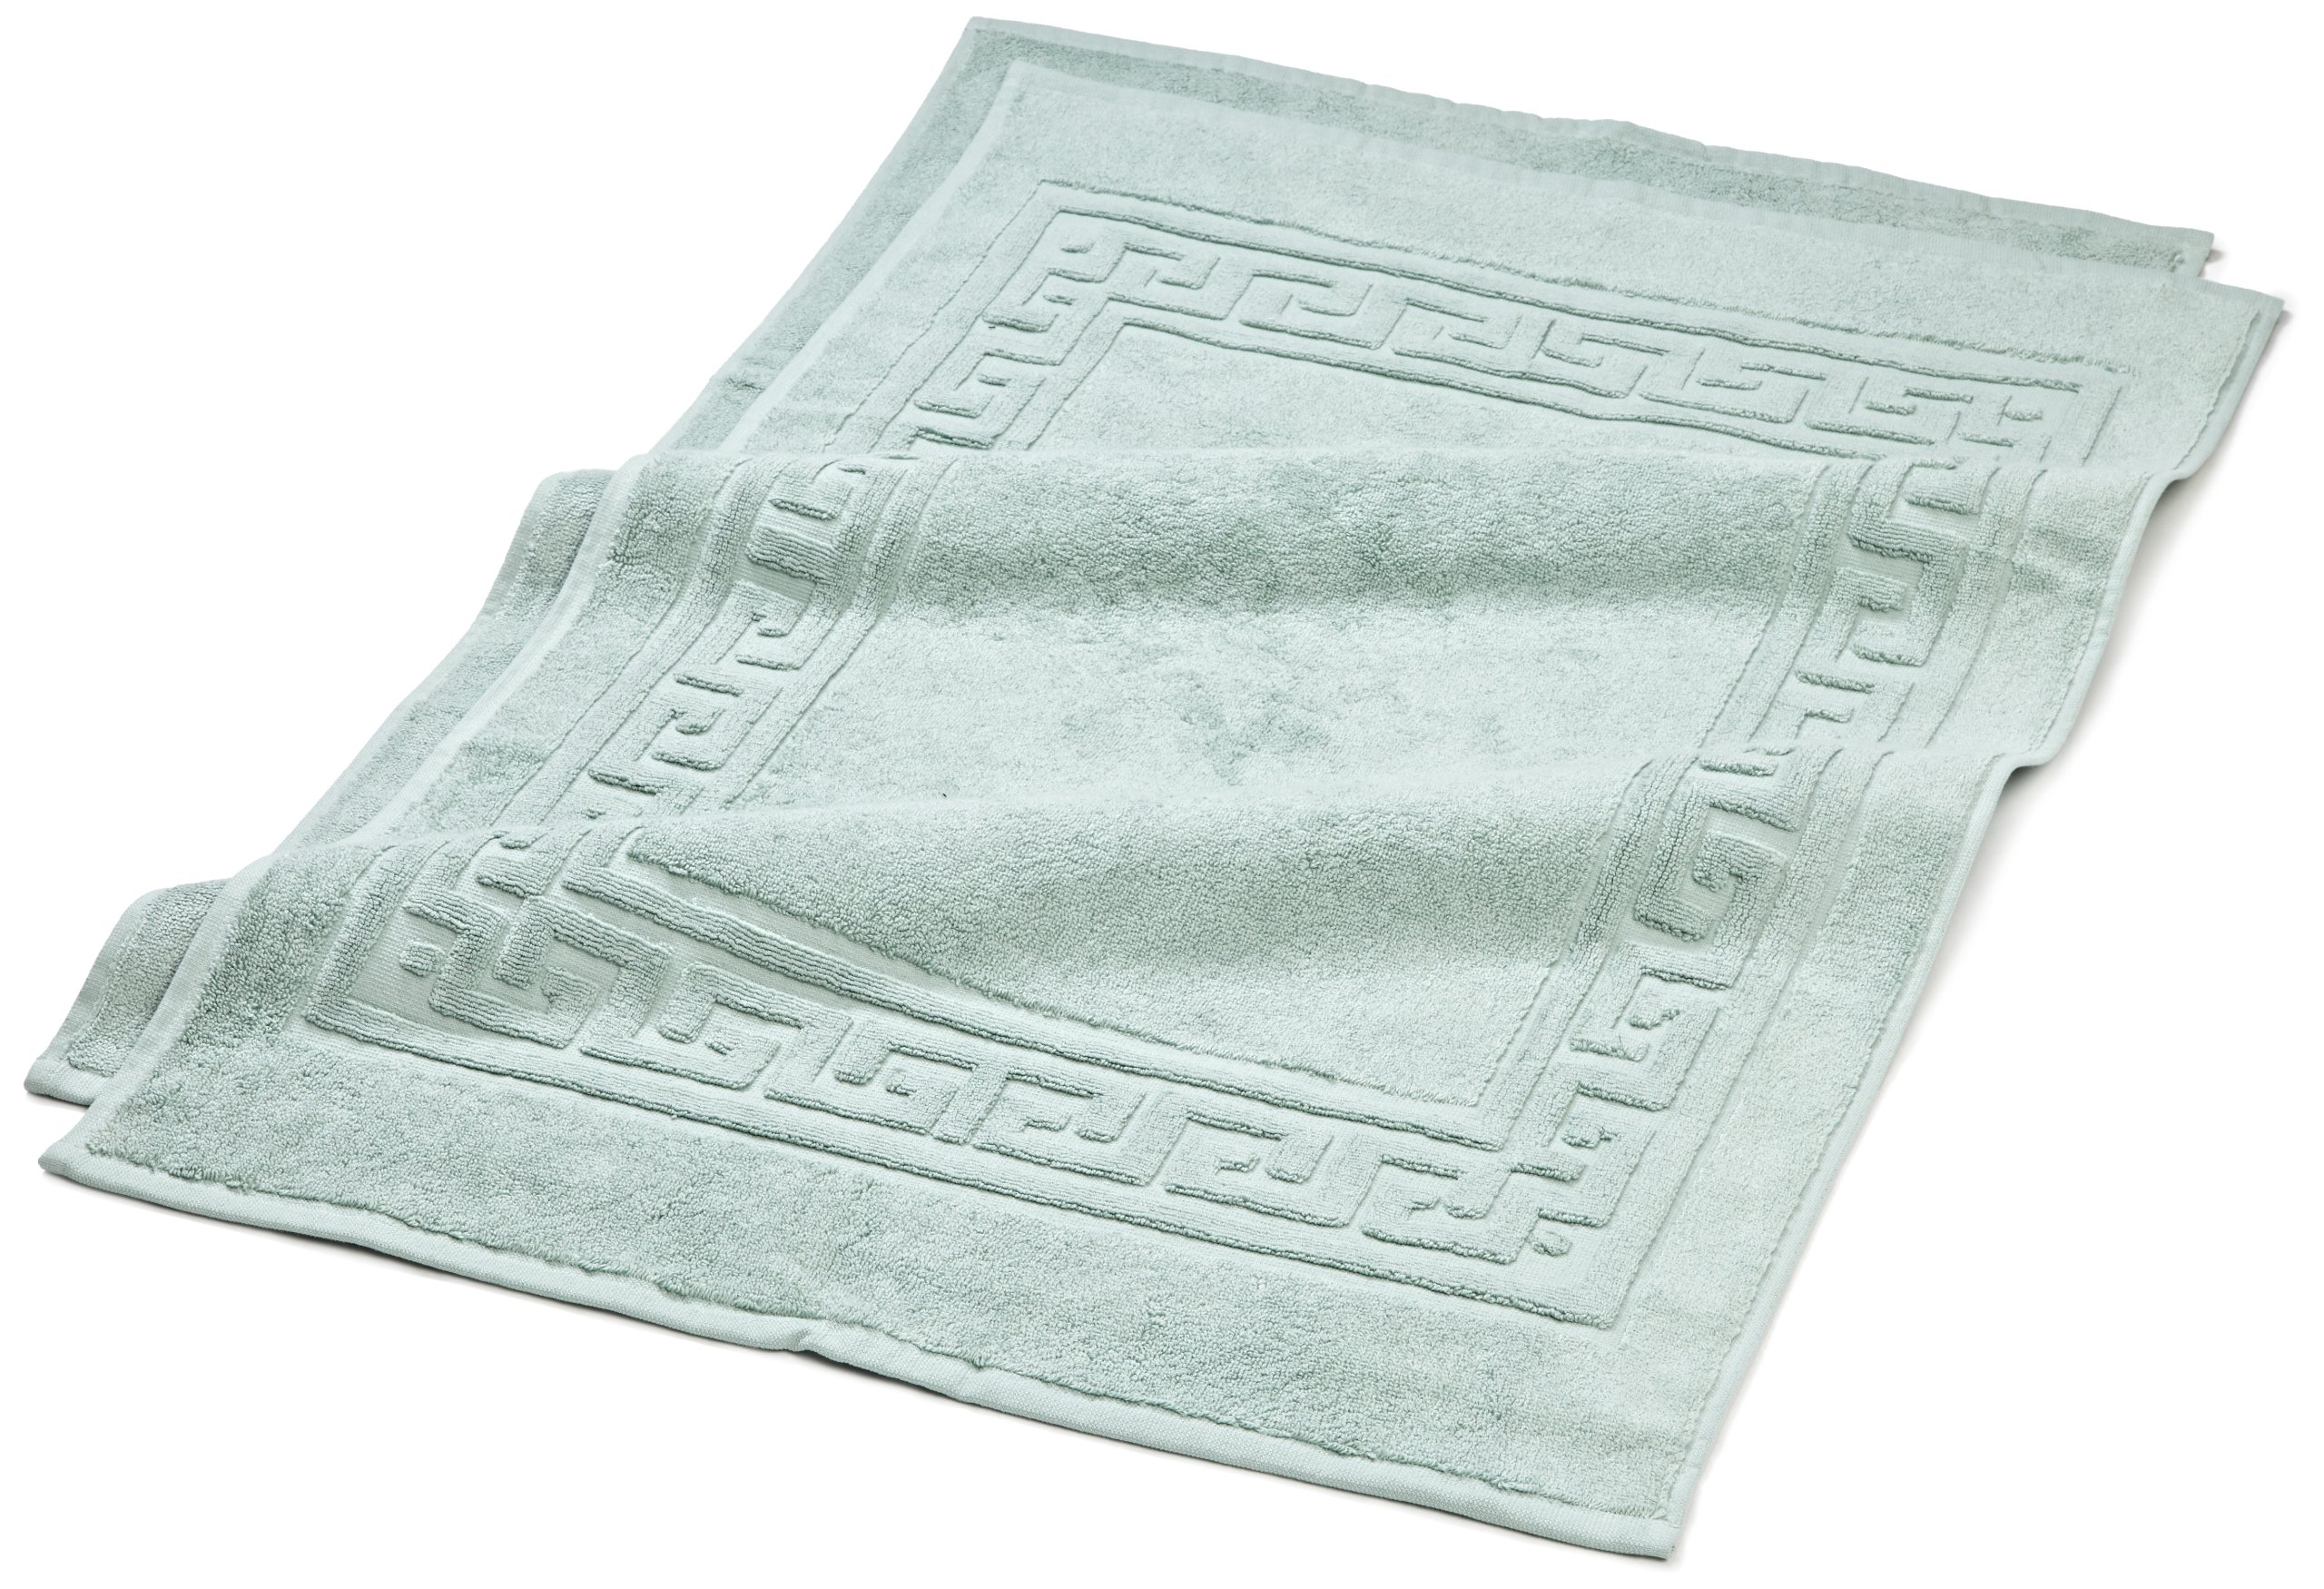 Superior Hotel & Spa Quality Bath Mat Set of 2, Made of 100% Premium Long-Staple Combed Cotton, Durable and Washable Bathroom Mat 2-Pack - Sage, 22'' x 35'' each